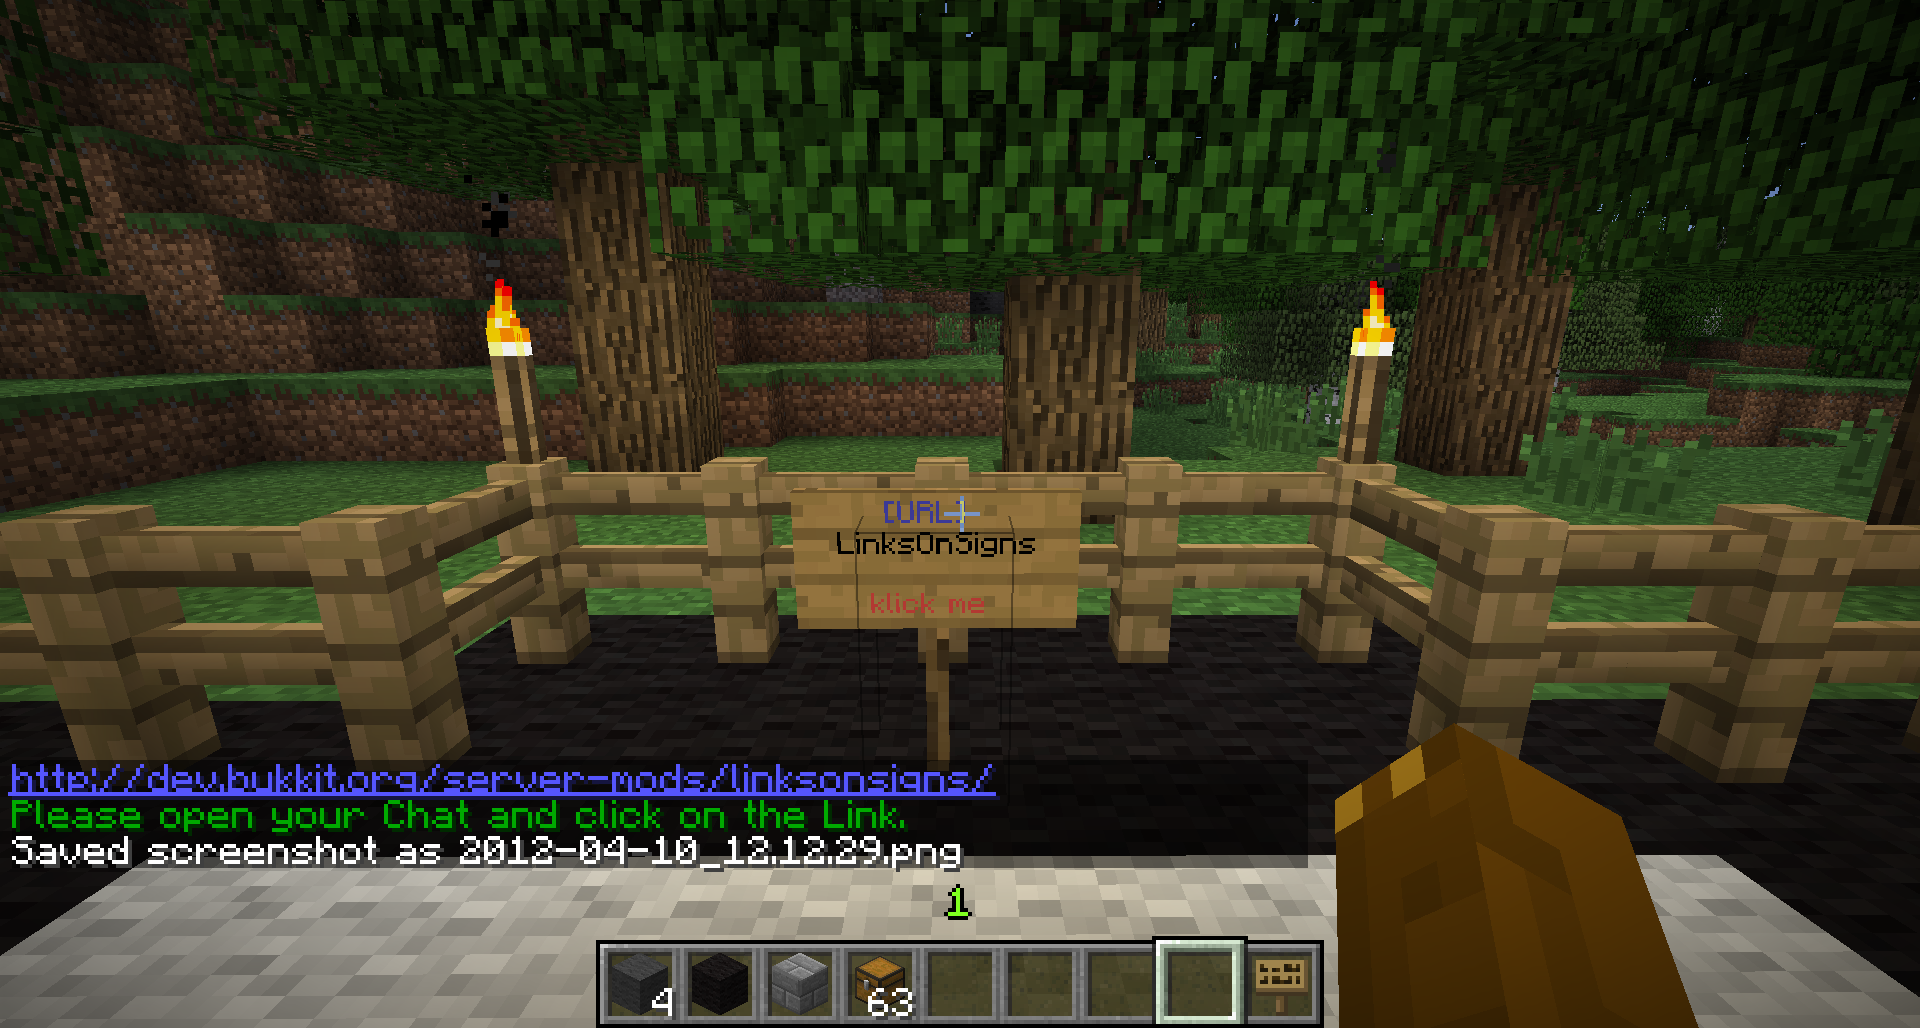 http://img.niceminecraft.net/BukkitPlugin/LinksOnSigns.png